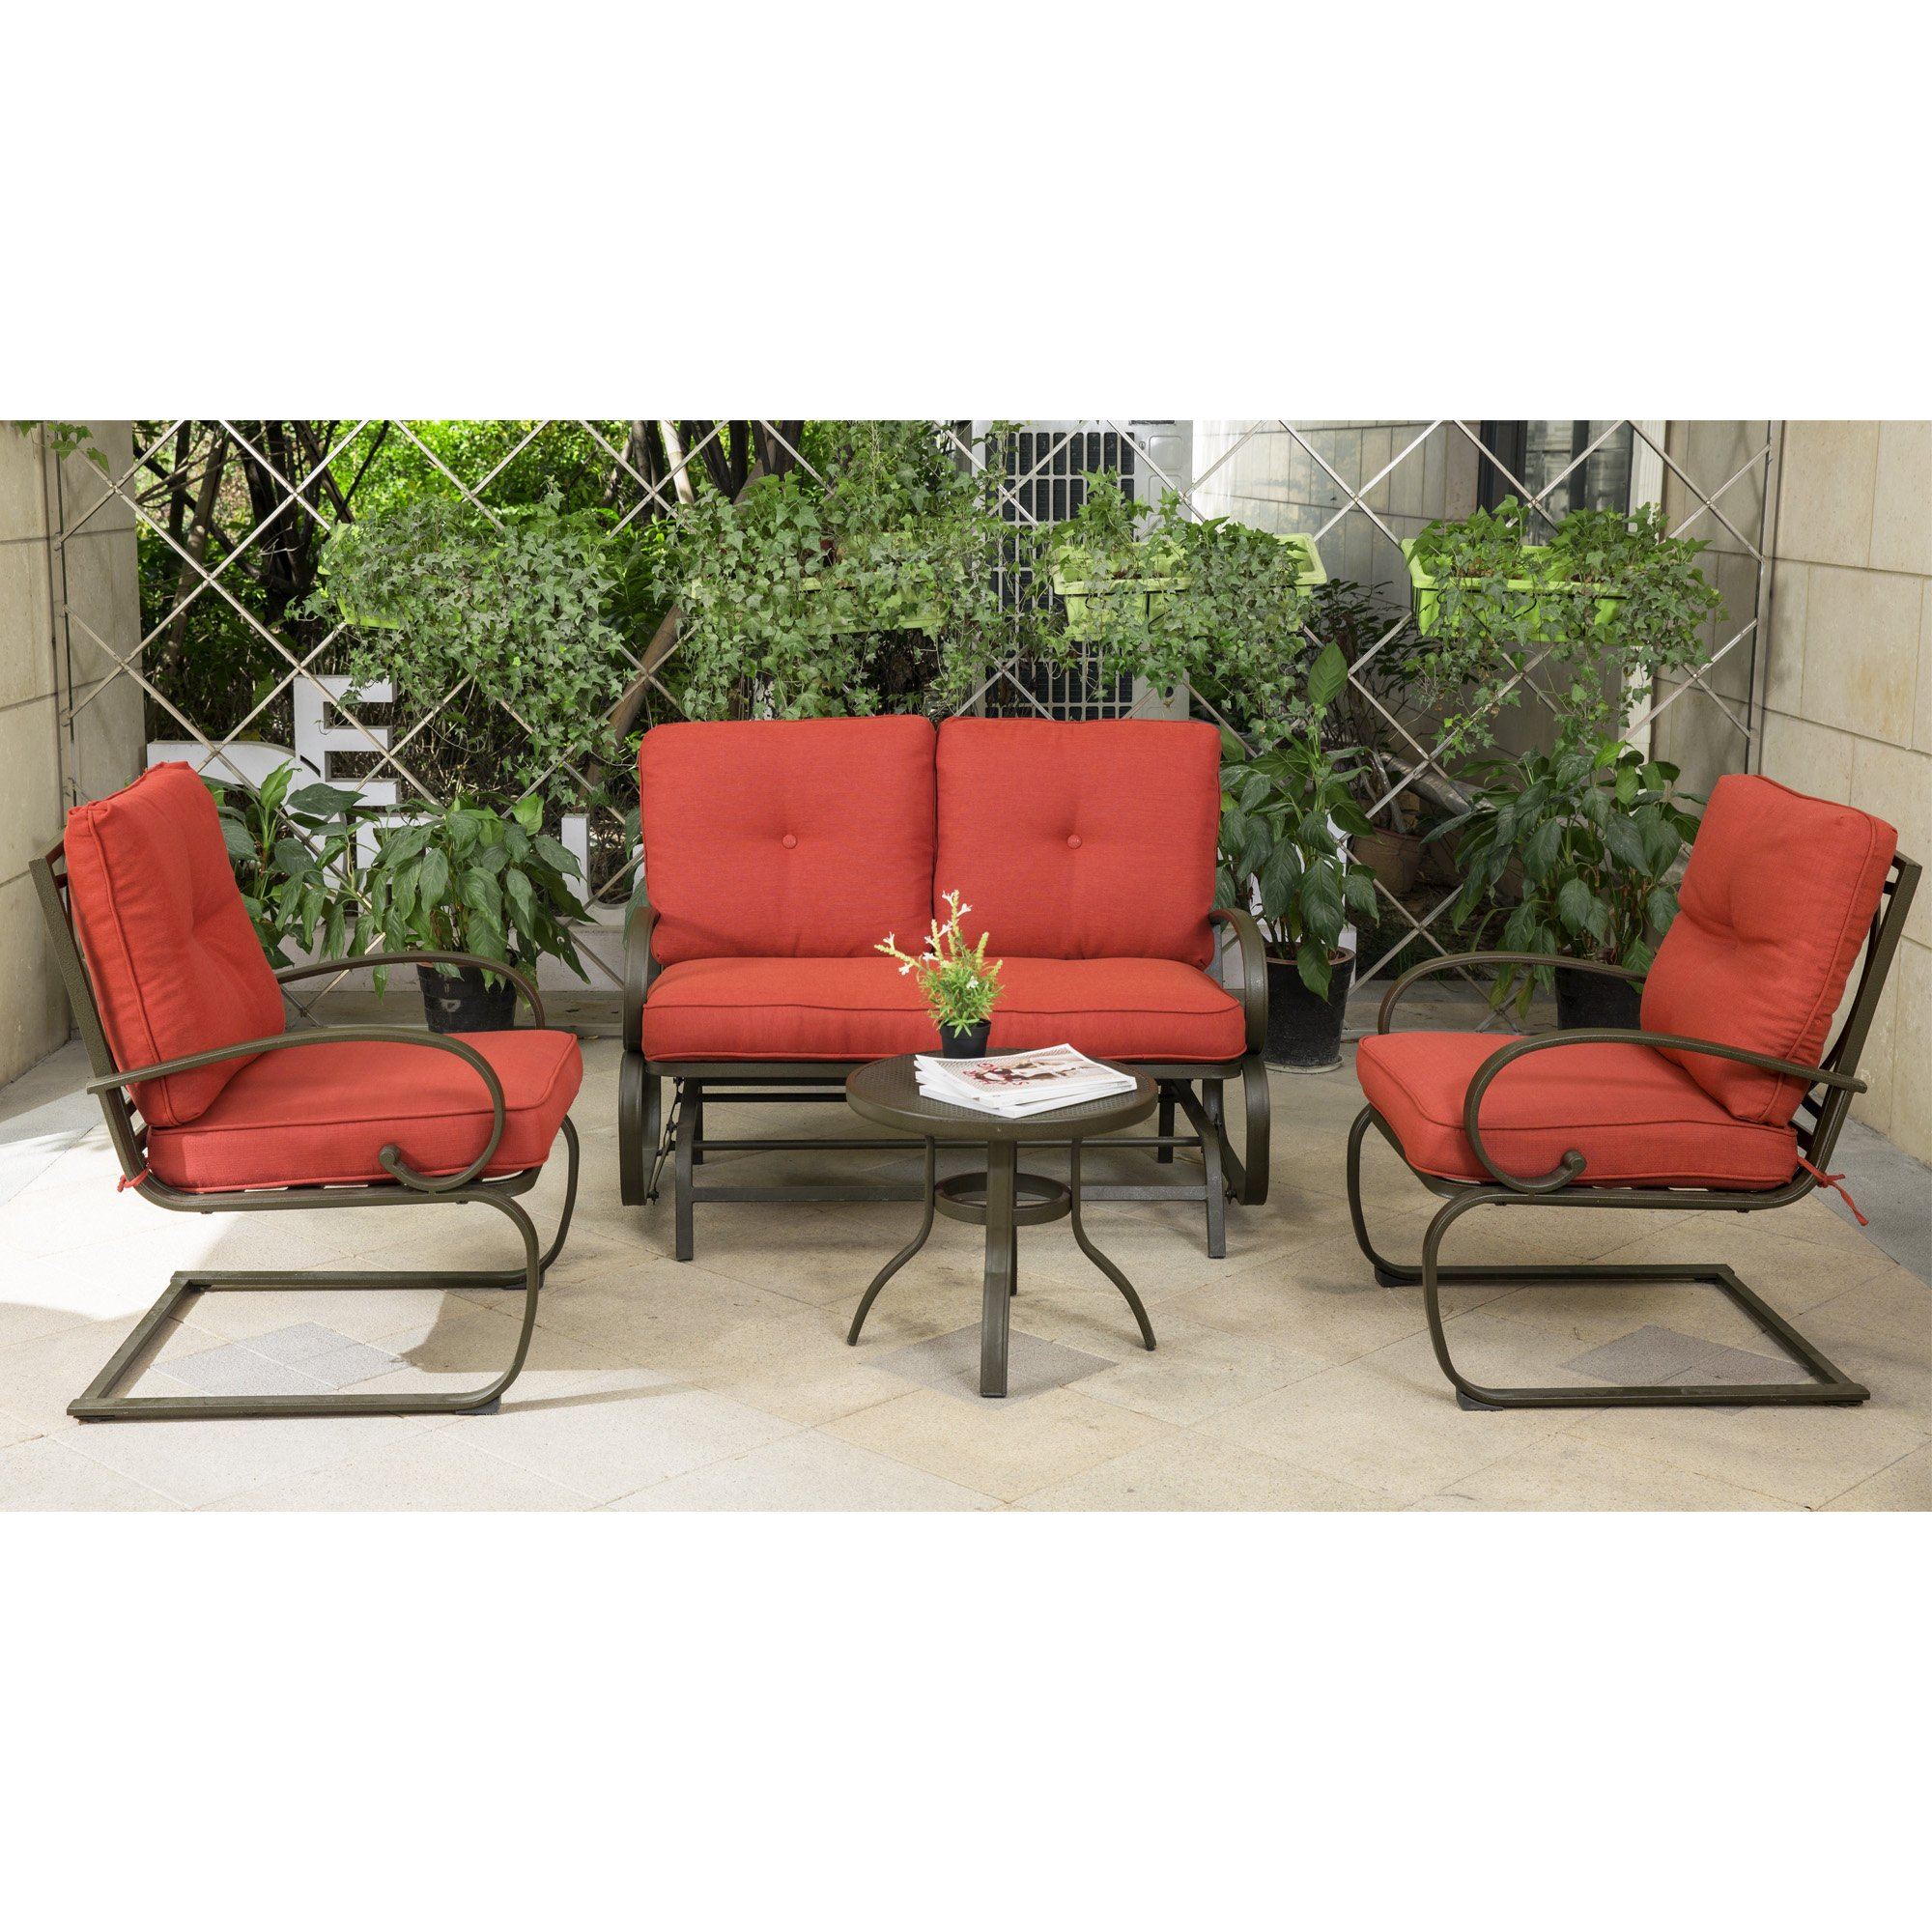 Best Rated in Patio Furniture Sets & Helpful Customer Reviews